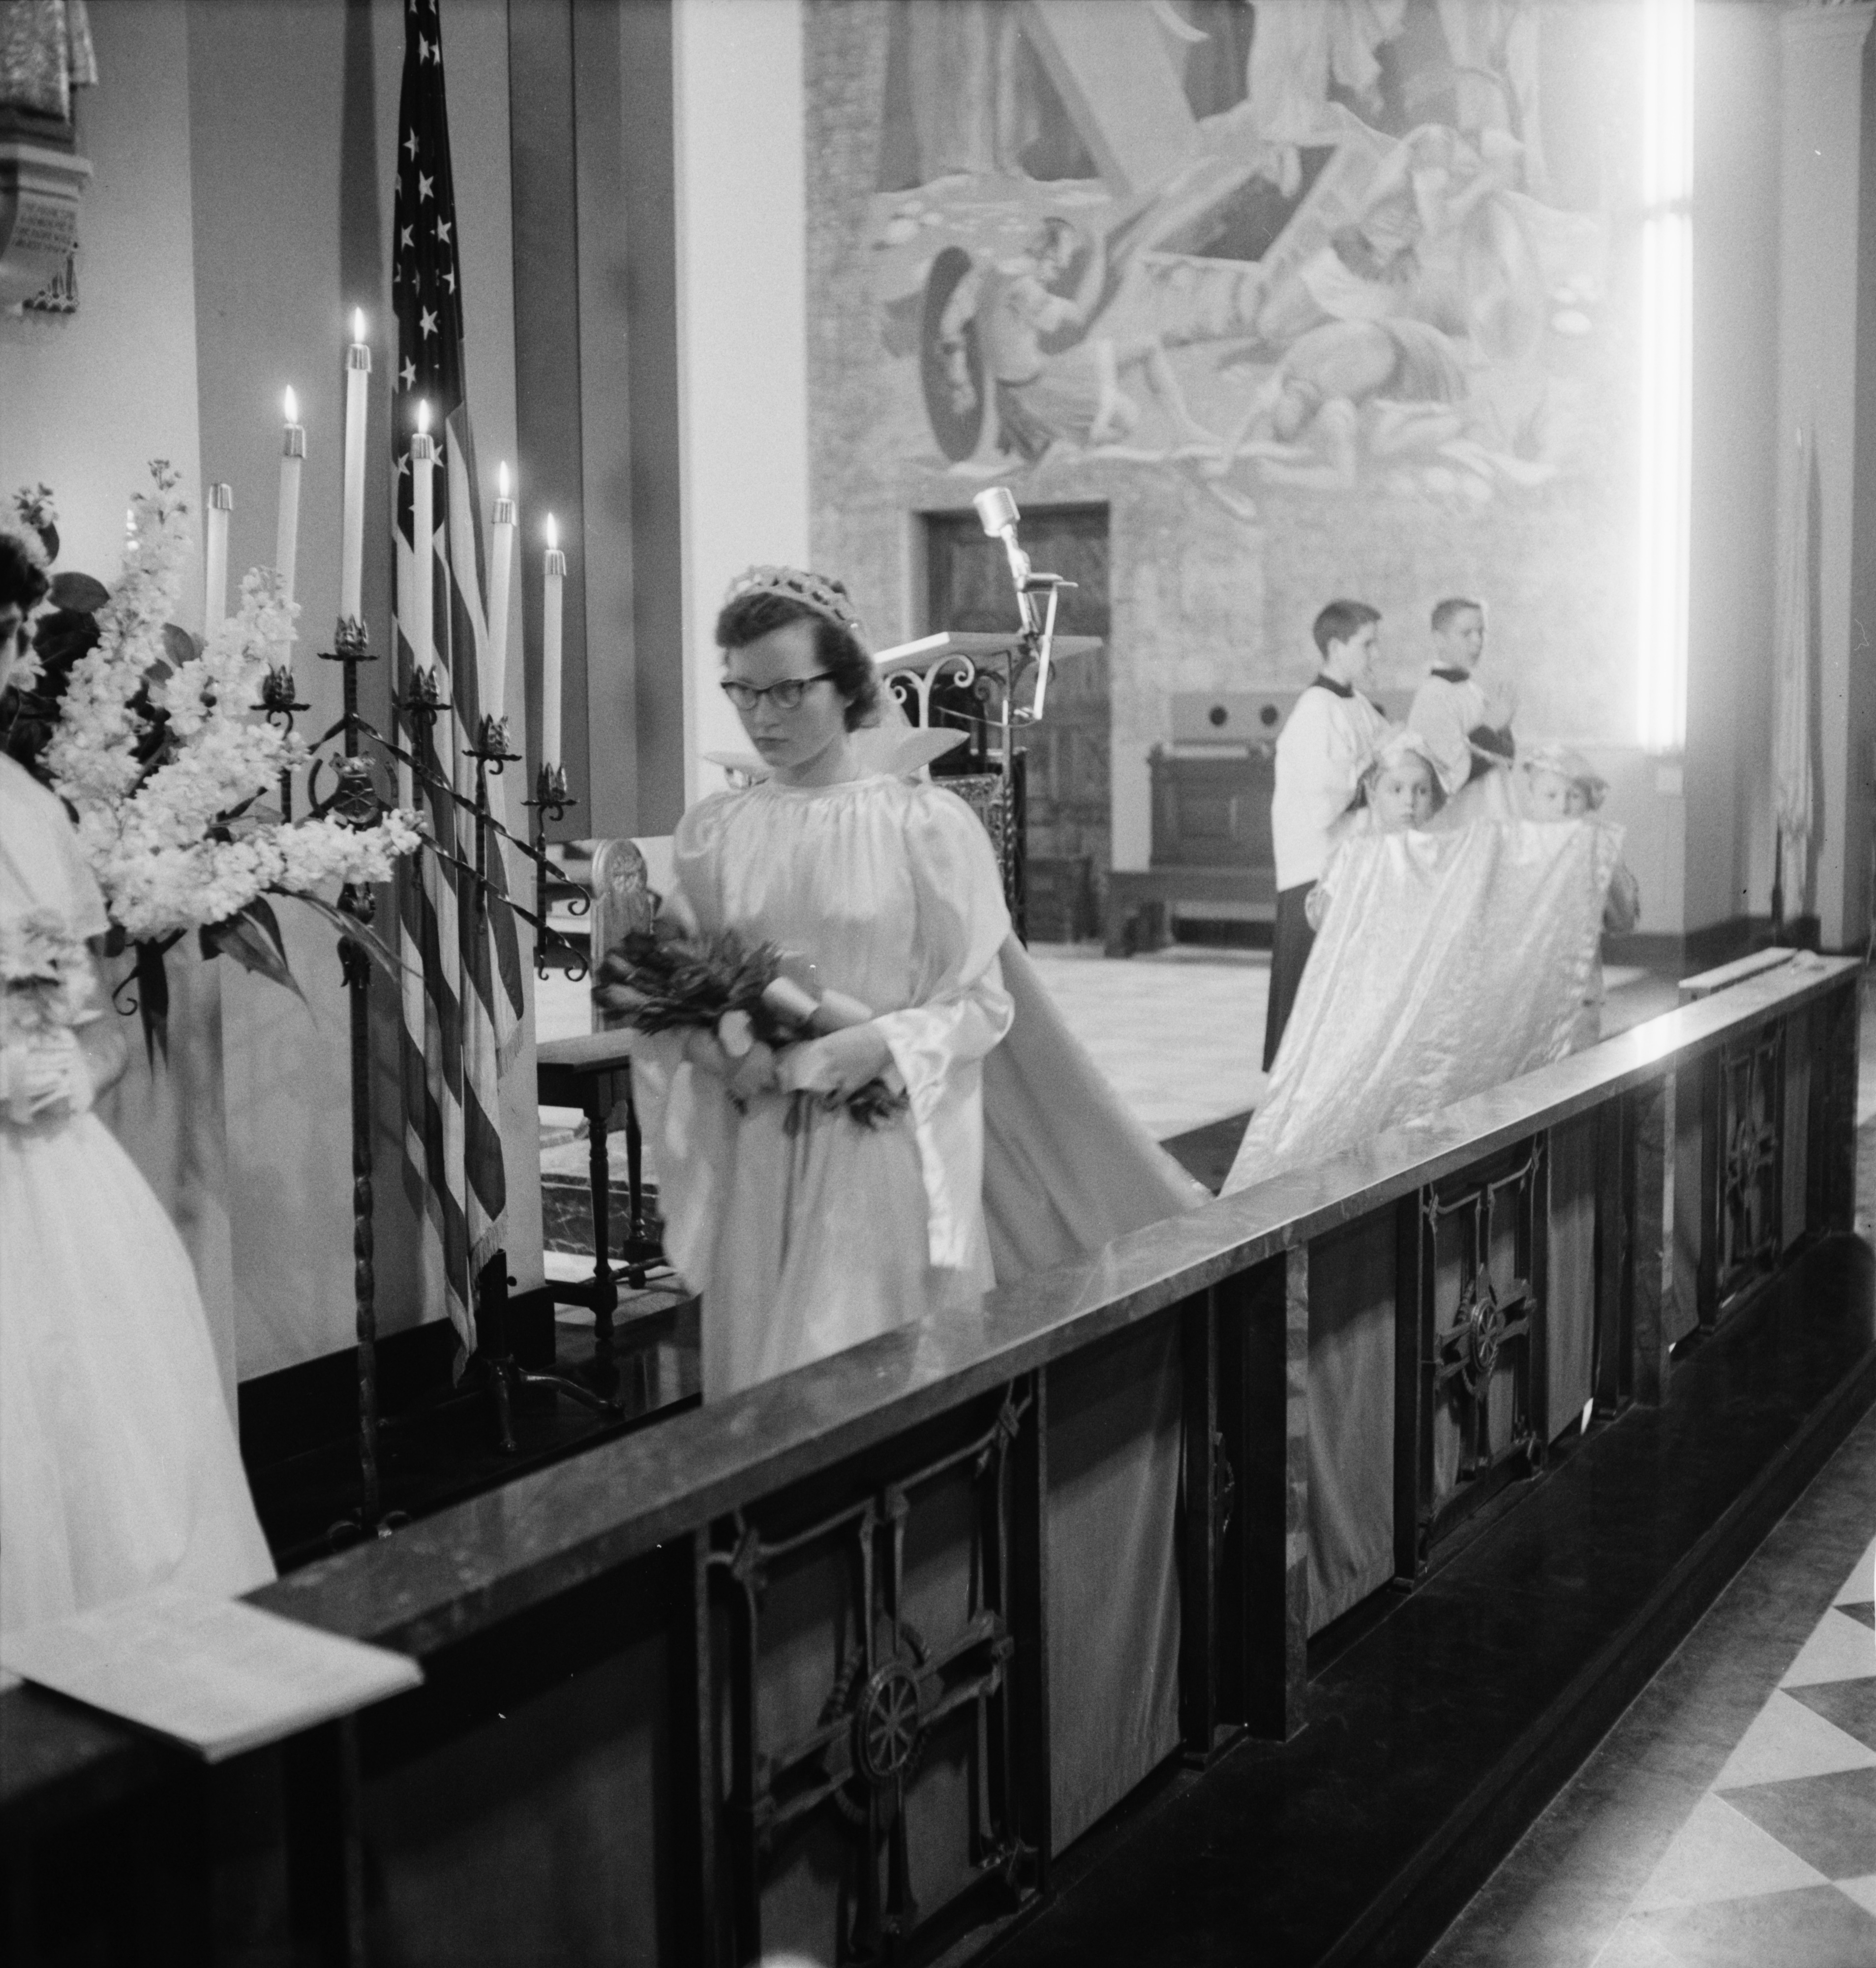 May Queen Bonnie Samar Carries Flowers For Mary During The May Crowning Ceremony At St. John's Catholic Church In Ypsilanti, May 1957 image